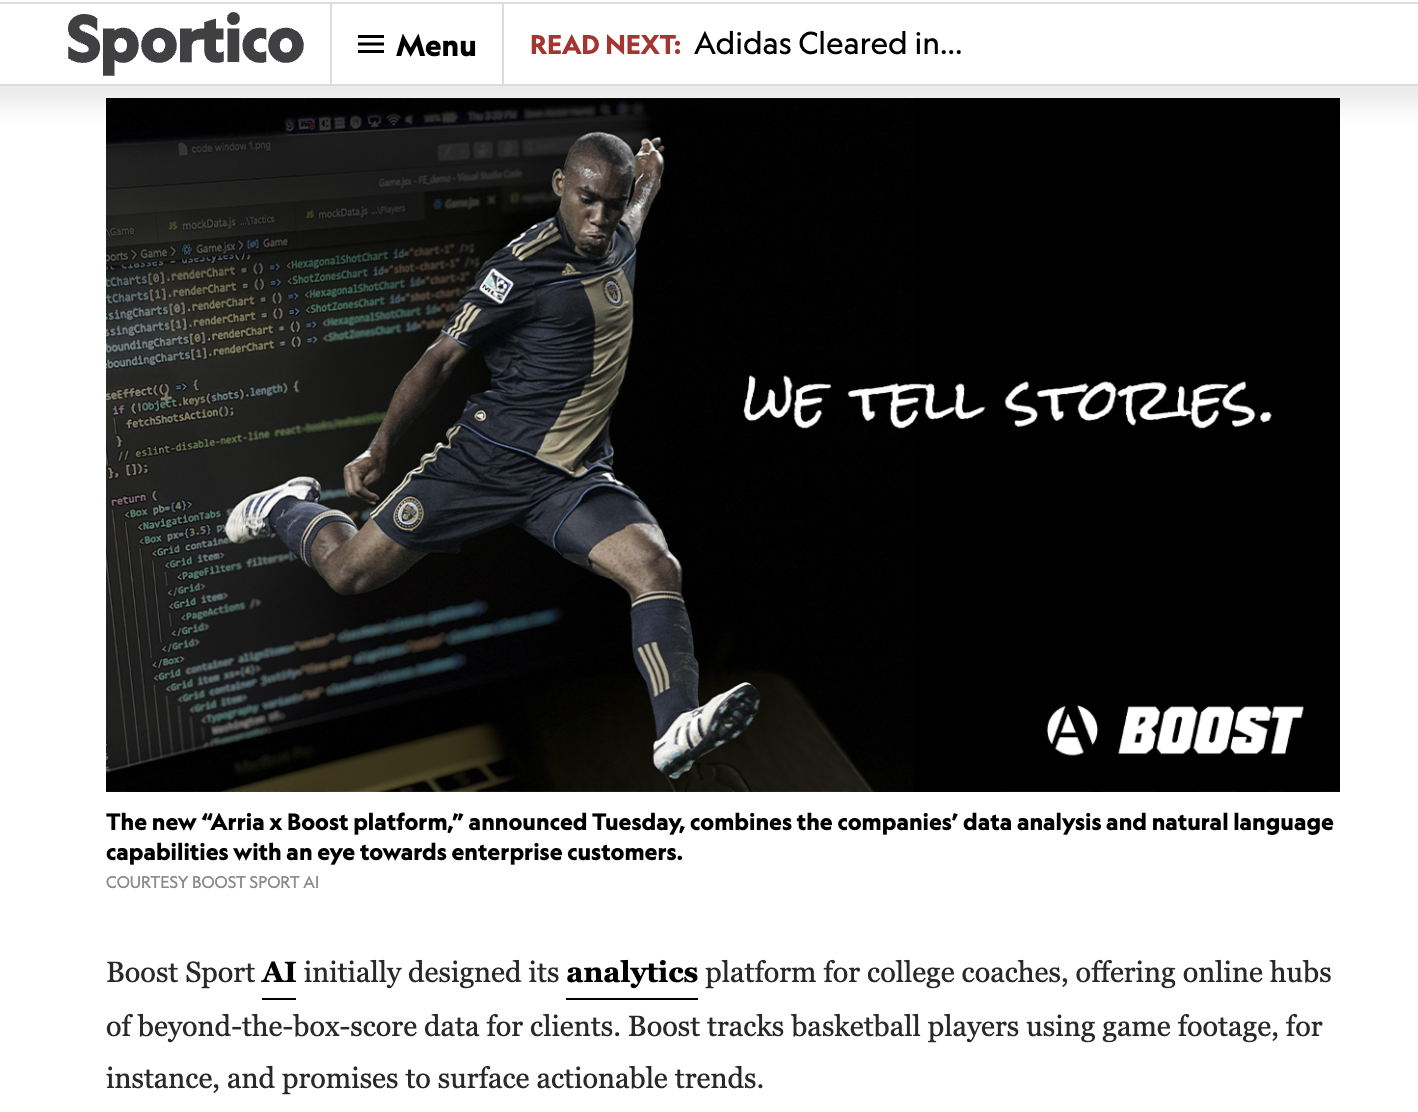 A.I. Meets Analytics in Boost-Arria Partnership, Personalizing Advanced Stats